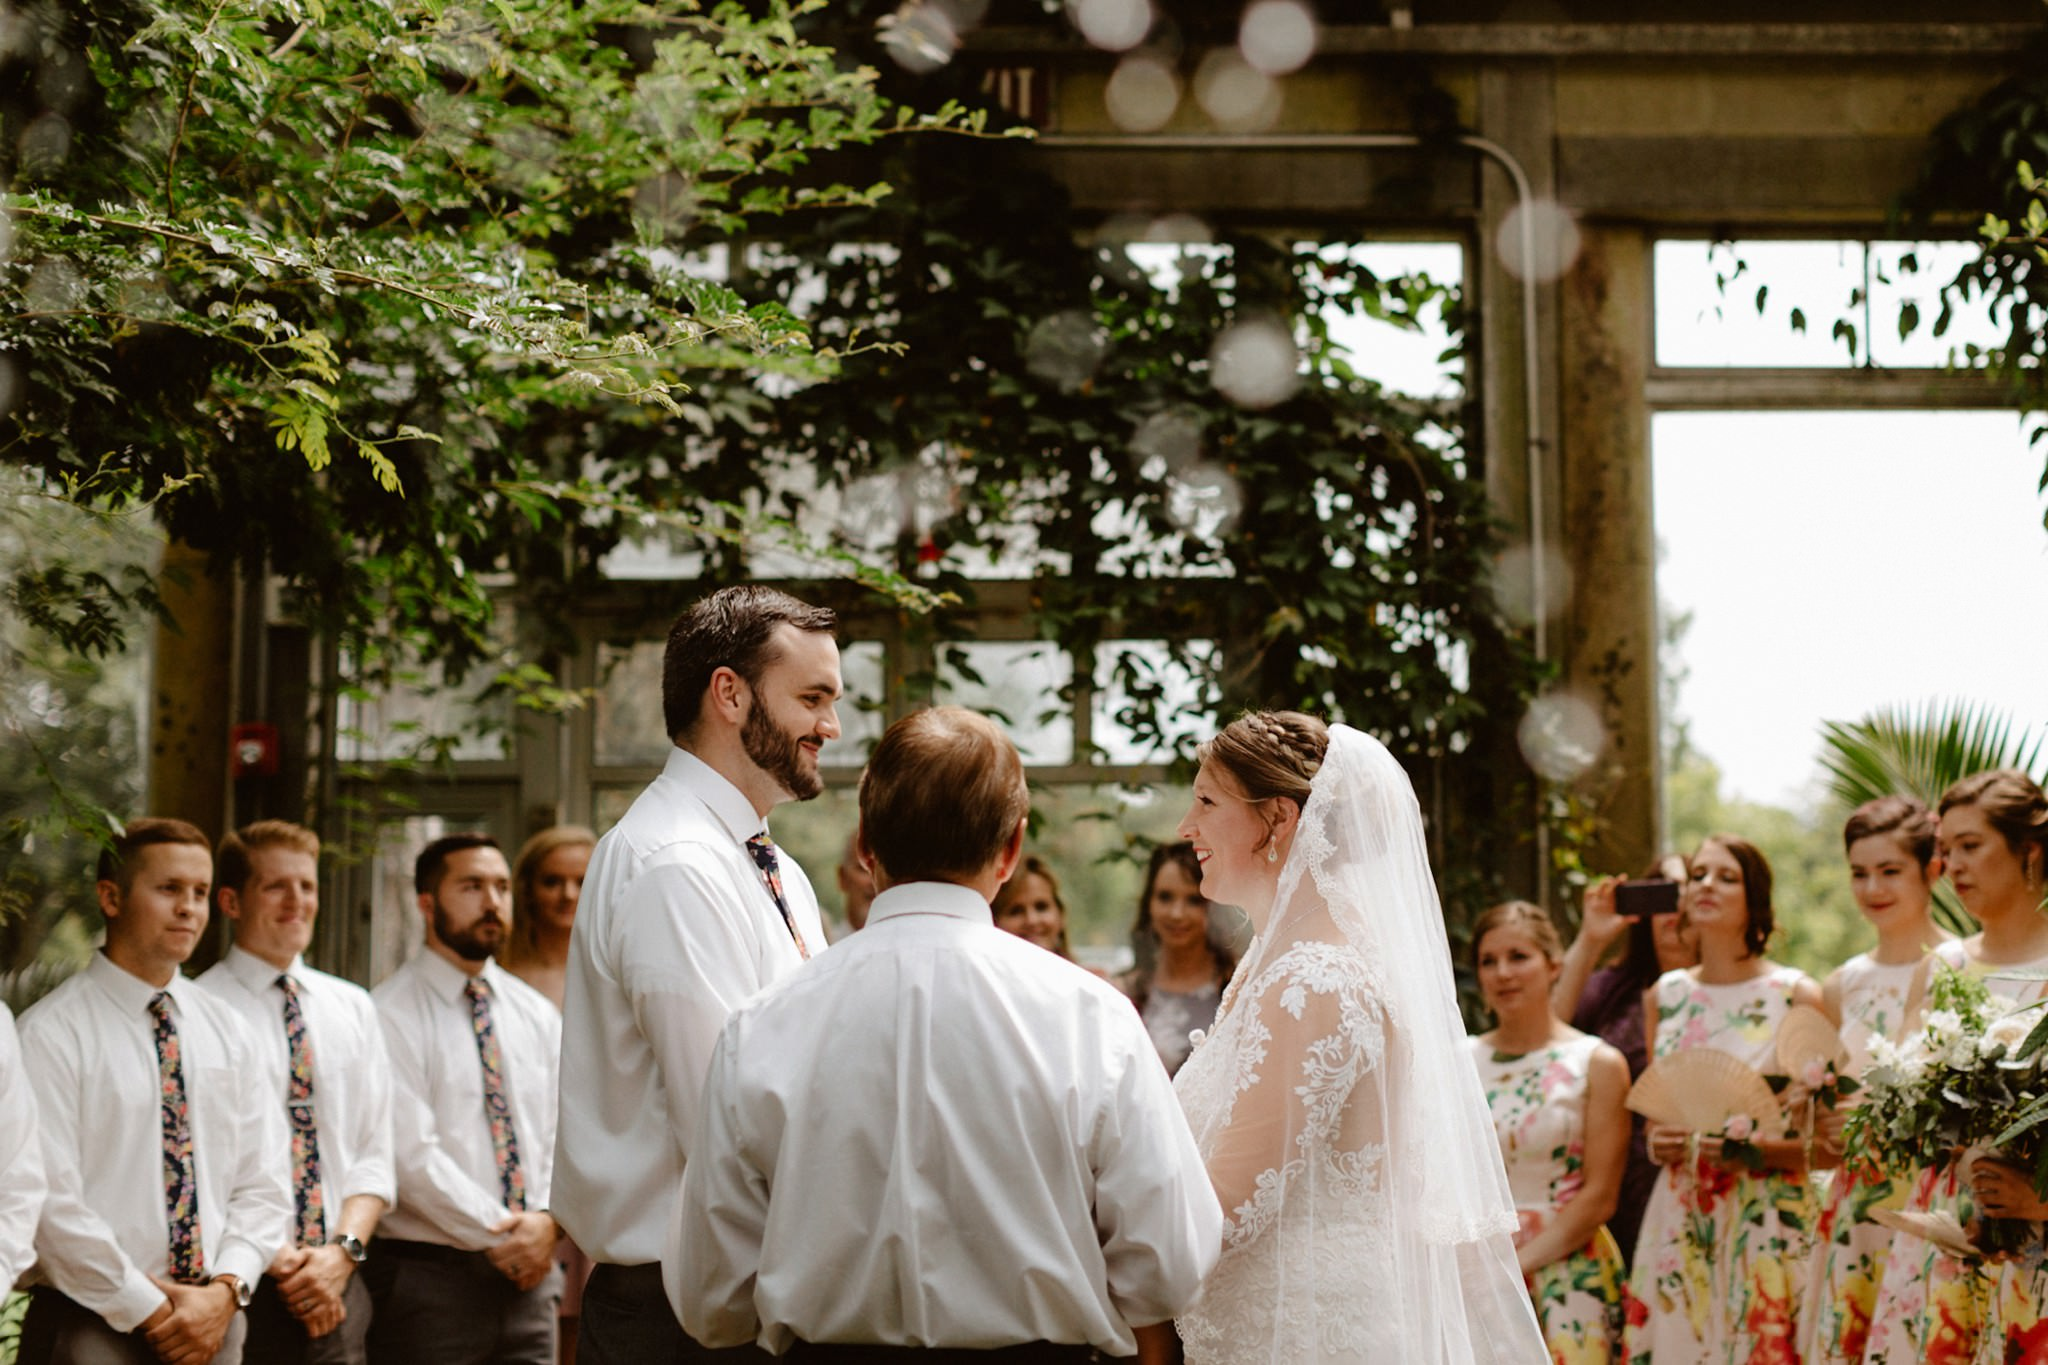 happy-bride-and-groom-say-i-do-at-garfield-park-conservatory-indianapolis